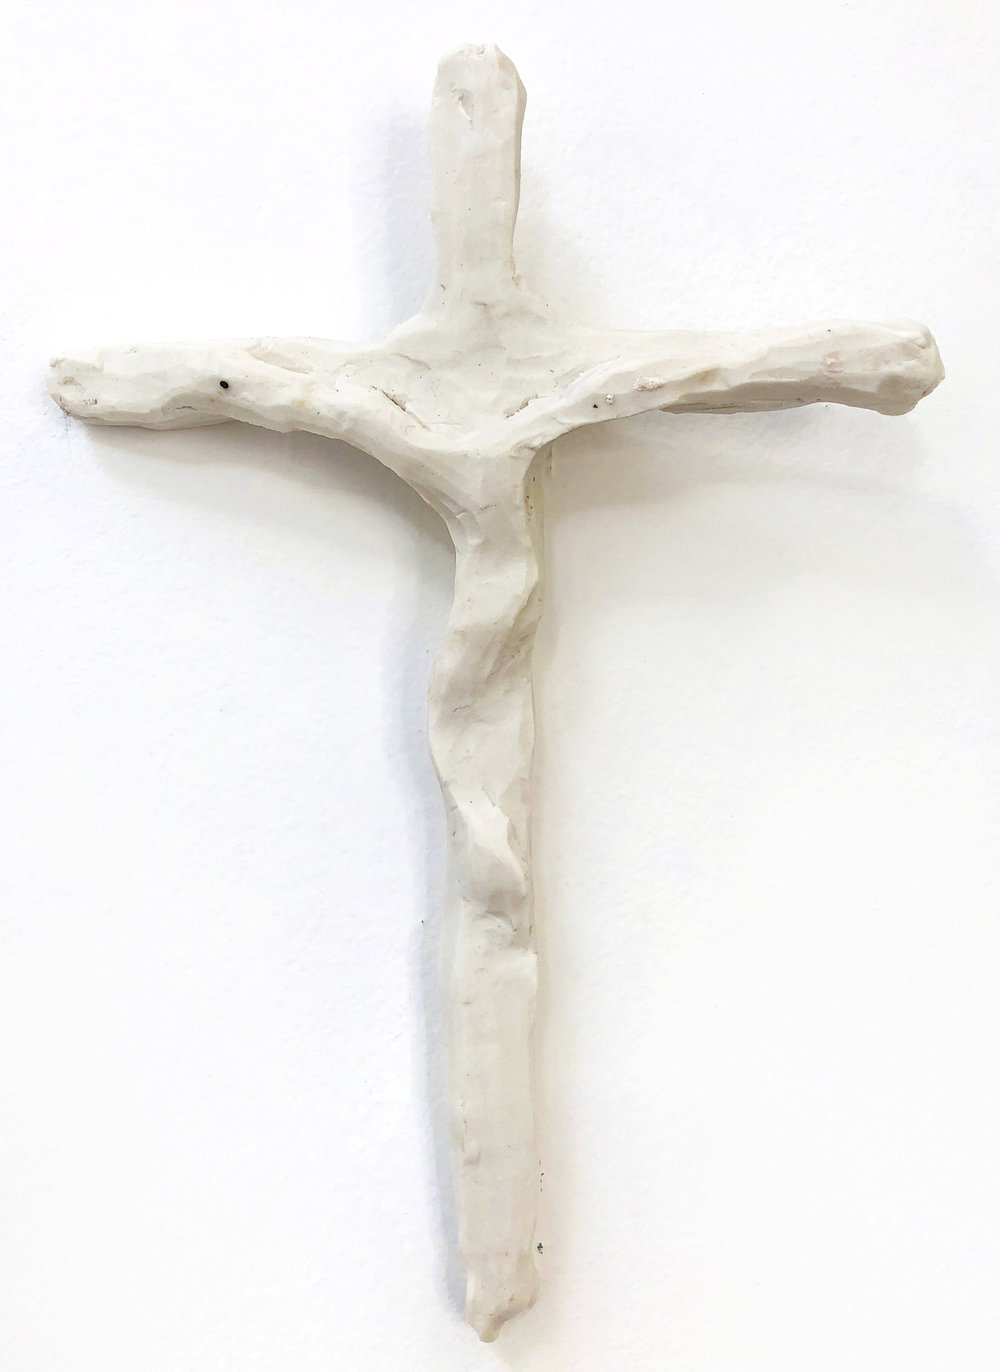 30-240x165-$1150-RichardLewer-Crucifix.jpg